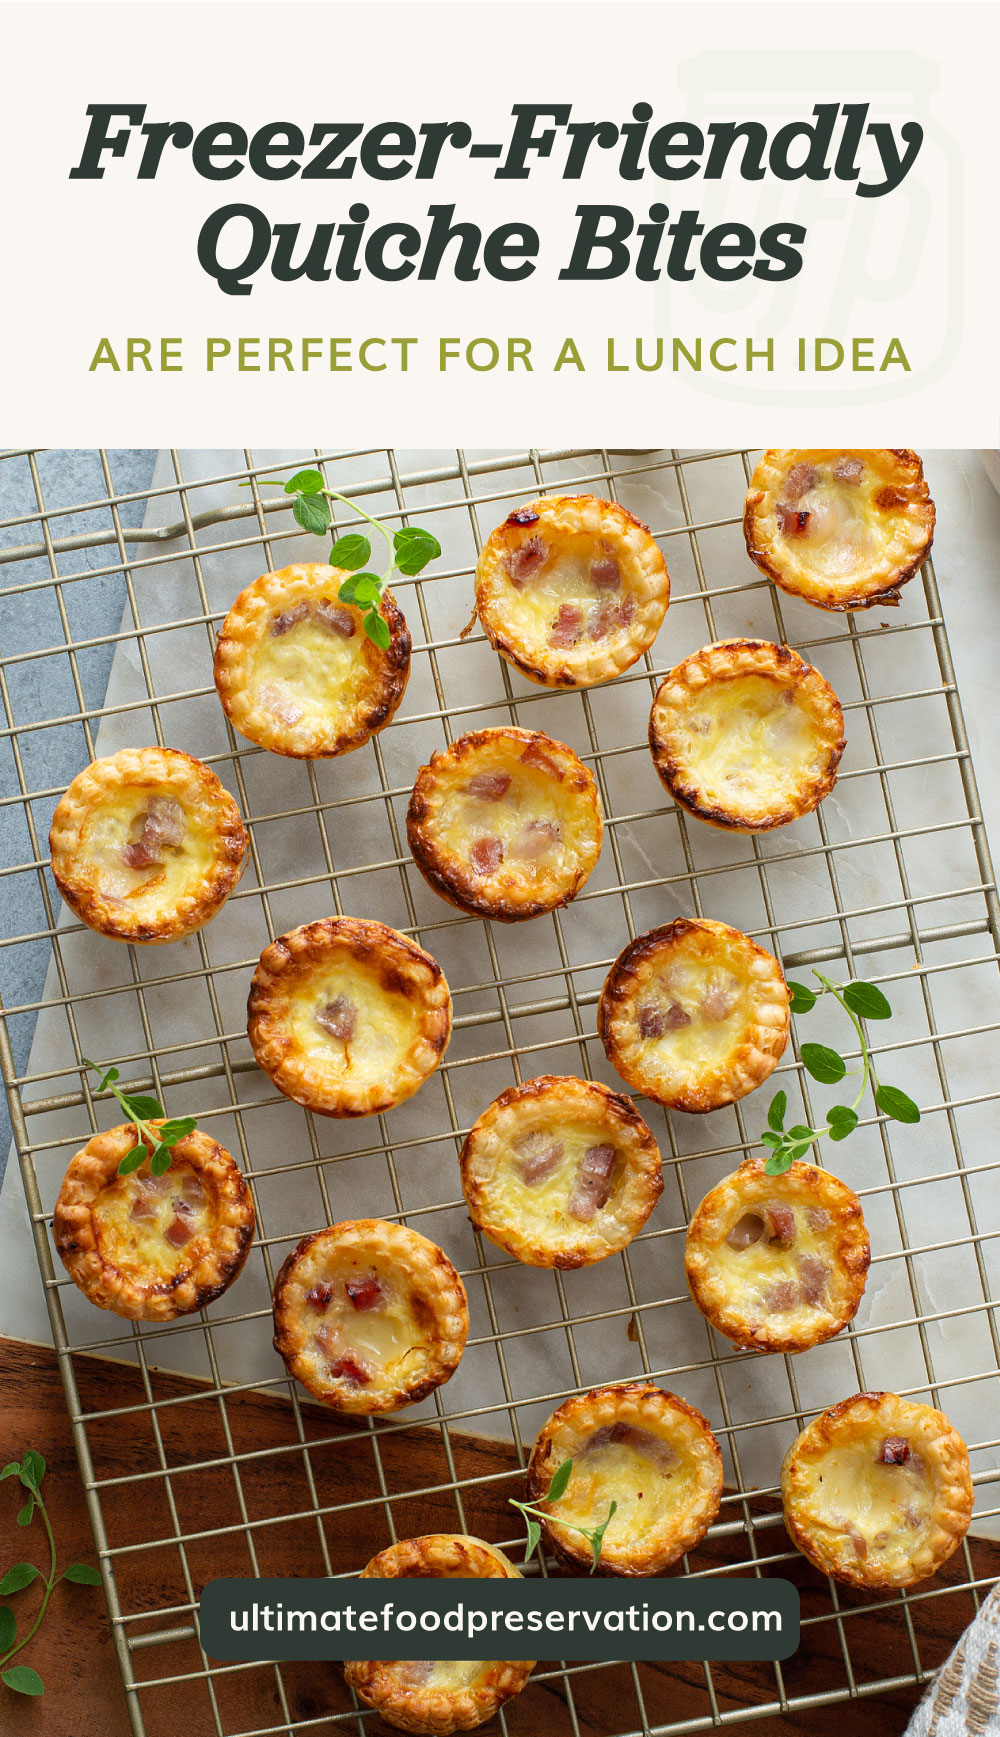 """Text area which says """"Freezer-Friendly Quiche Bites Are Perfect For A Lunch Idea"""" next to a top view of ham and cheese quiche bites on a cooling rack followed by another text area which says ultimatefoodpreservation.com"""